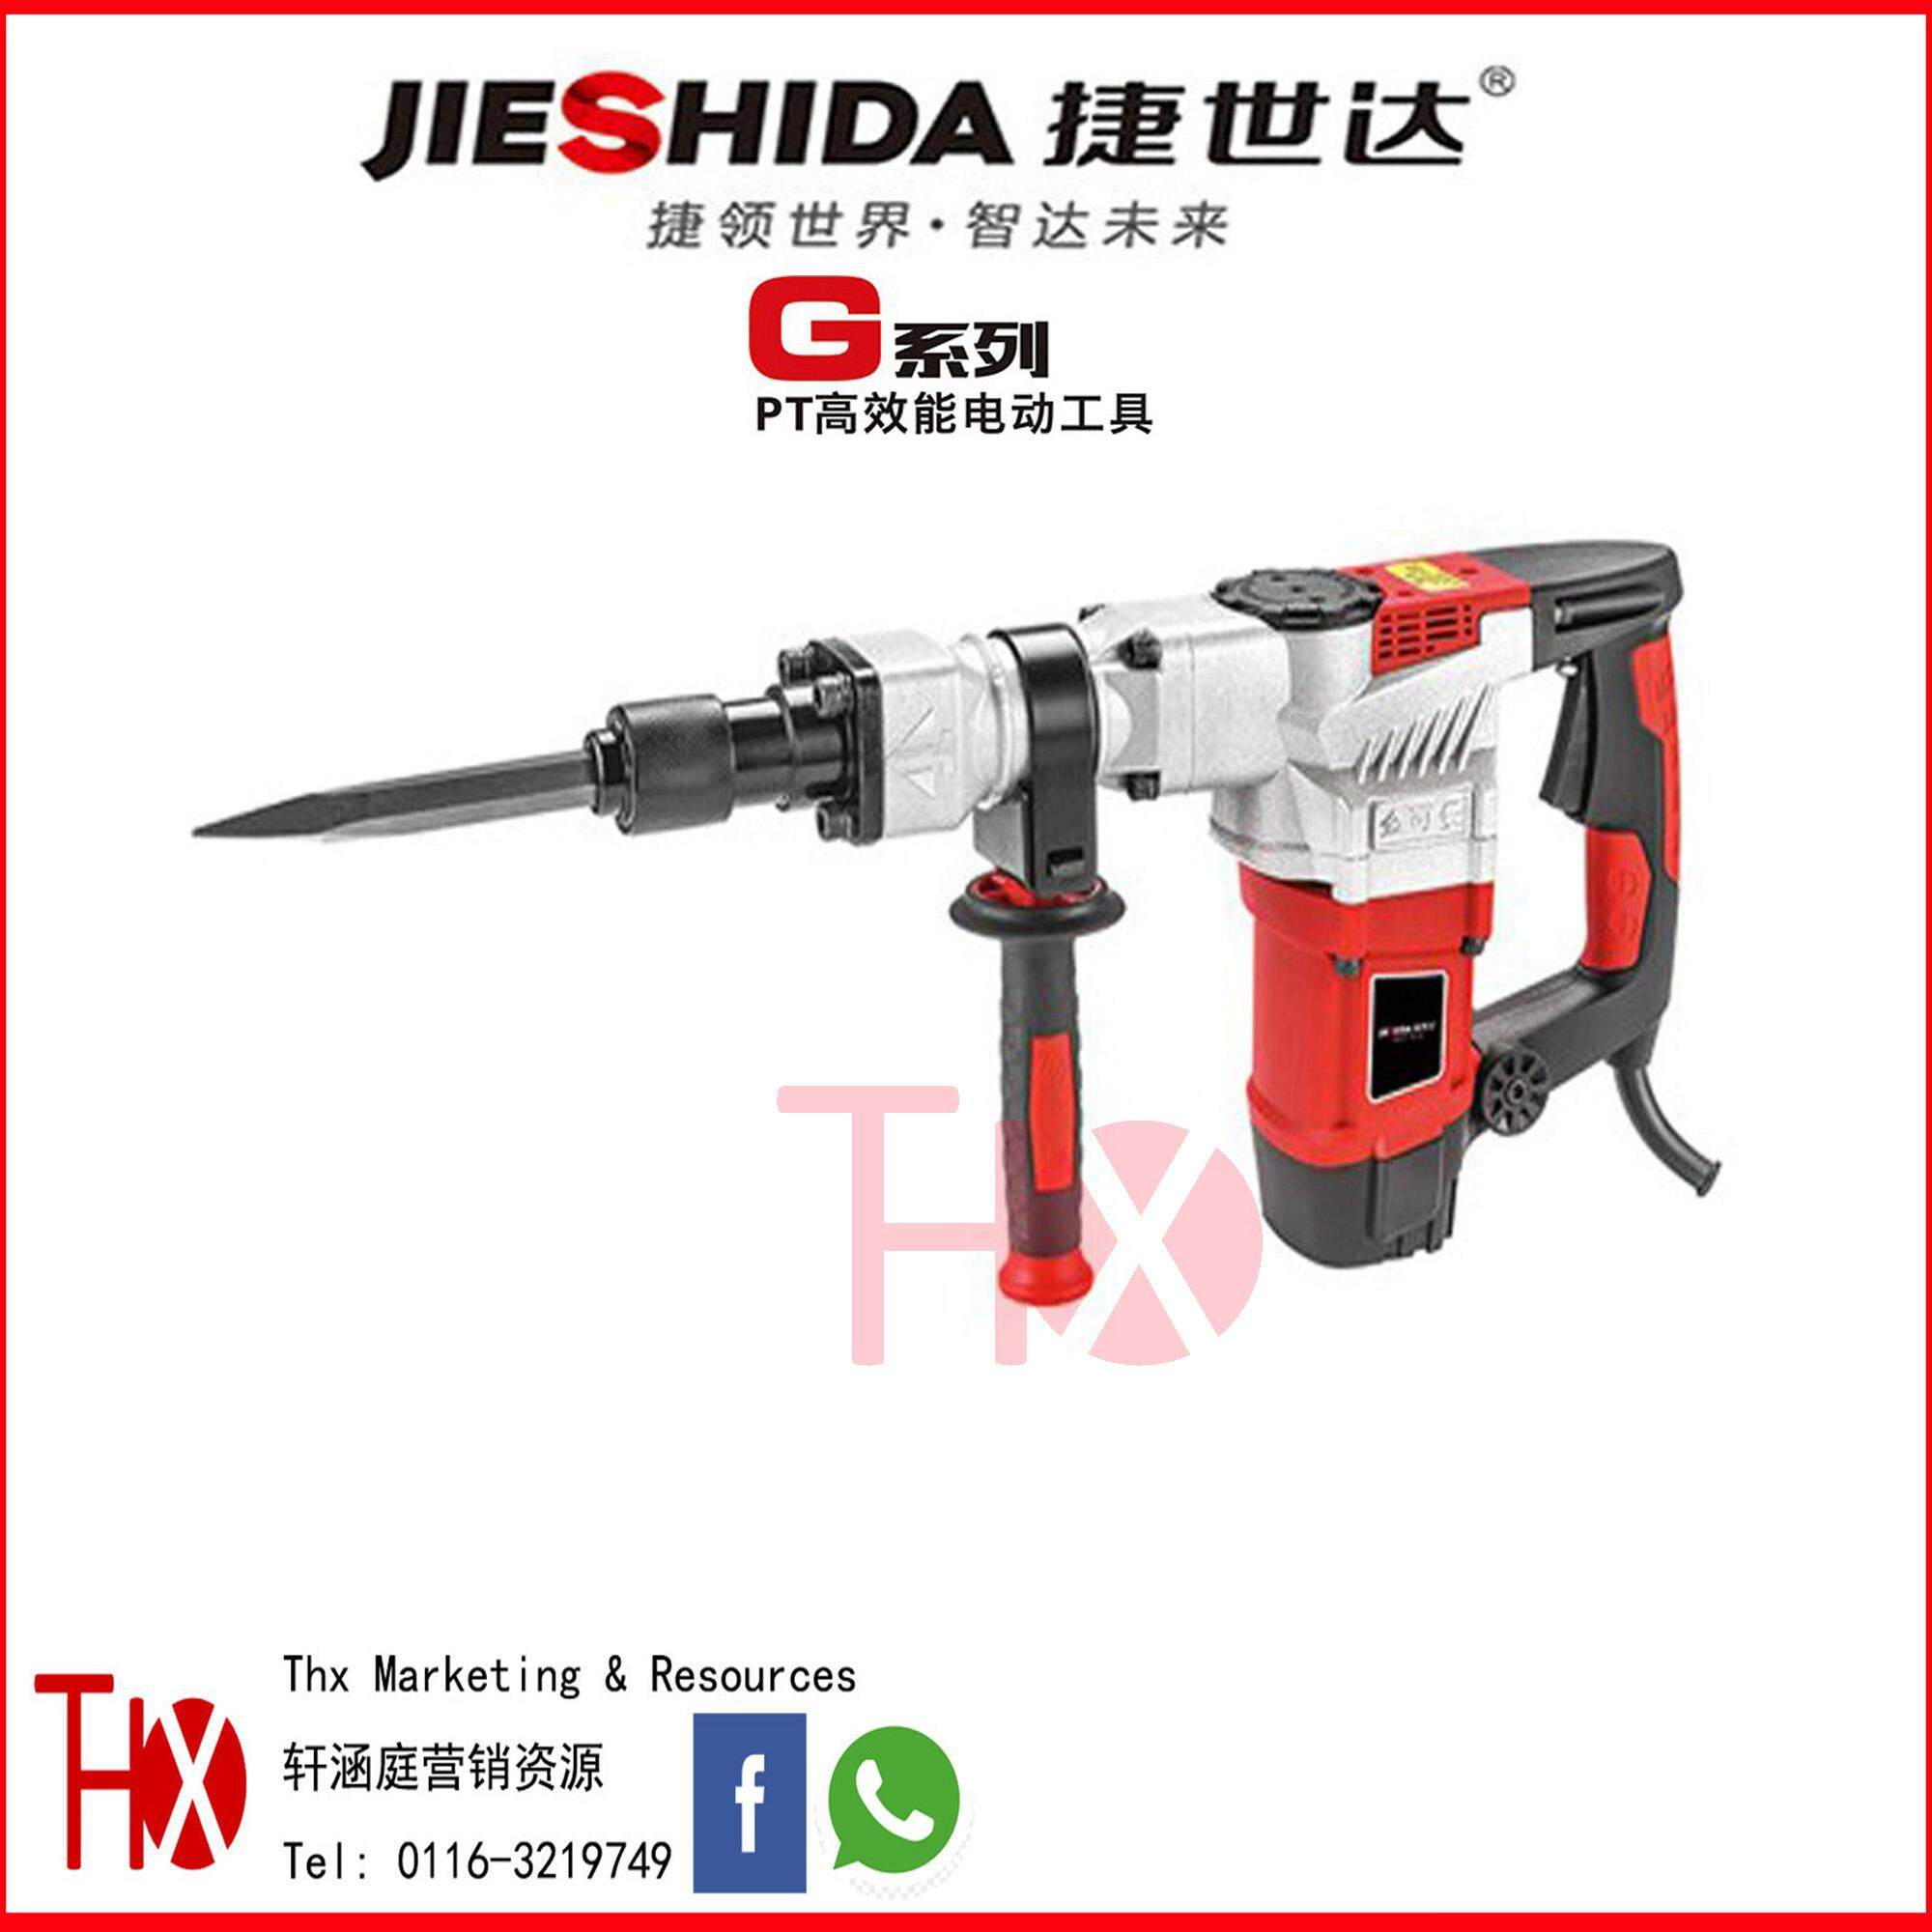 Jieshida Demolition Hammer 2300watt 22J Heavy Duty Model